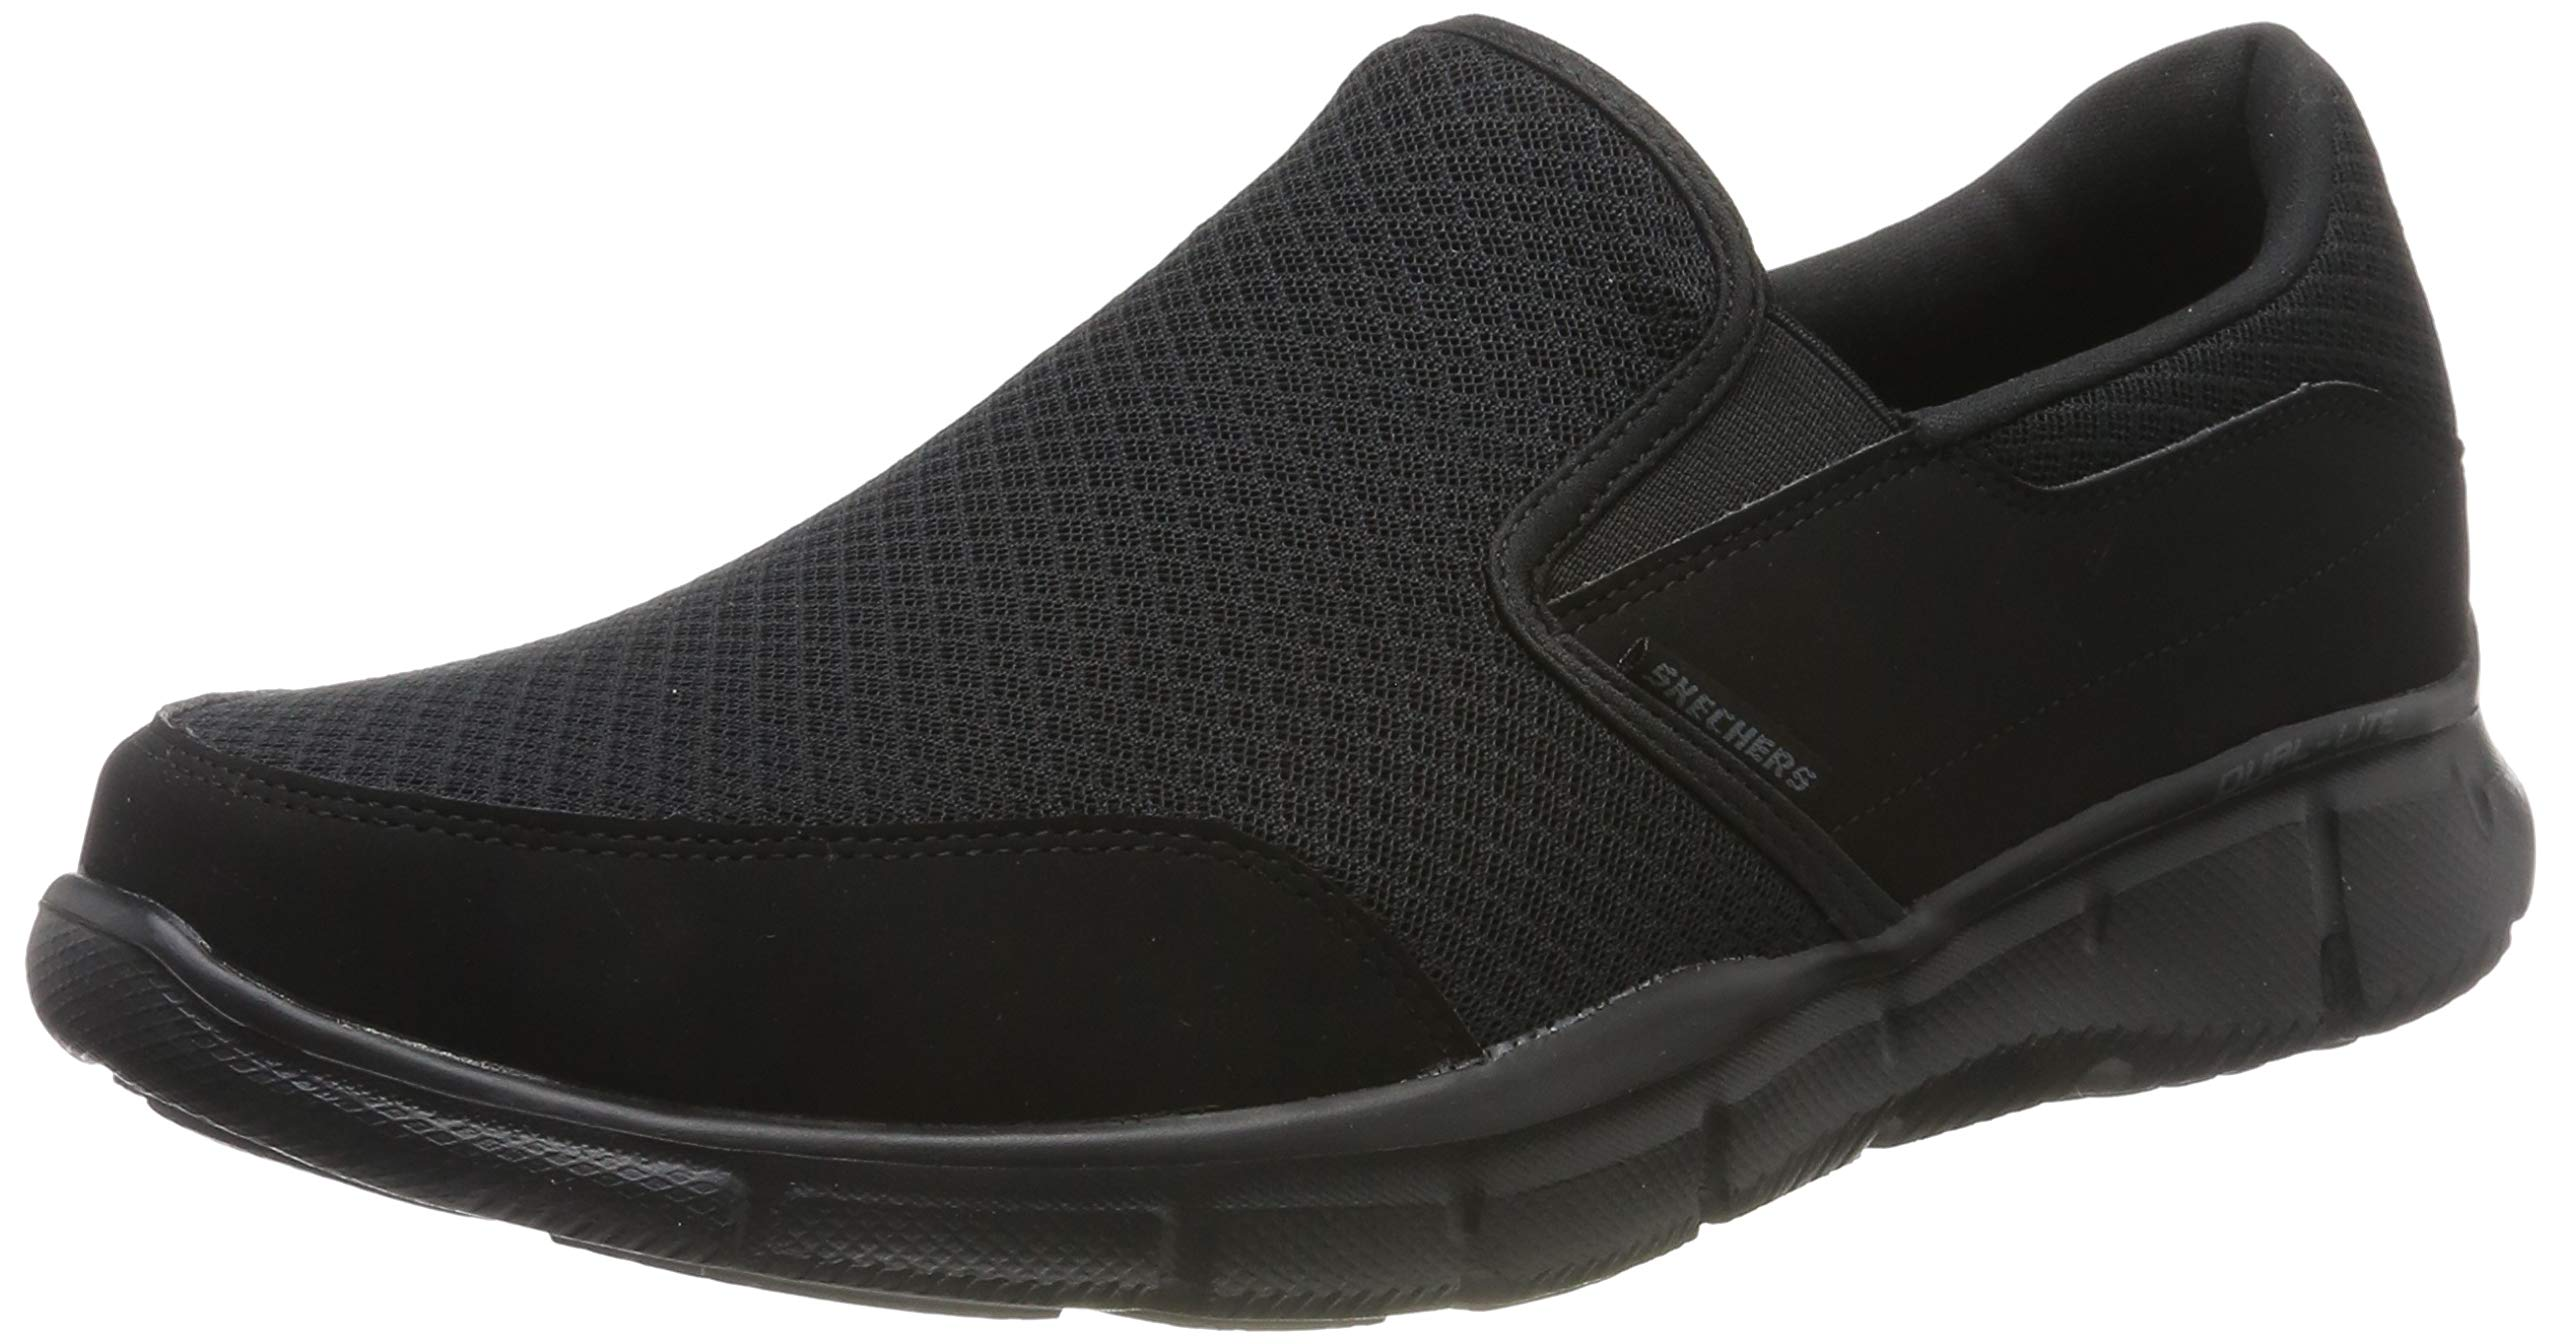 Skechers Men's Equalizer Persistent Slip-On Sneaker, Black, 10.5 XW US by Skechers